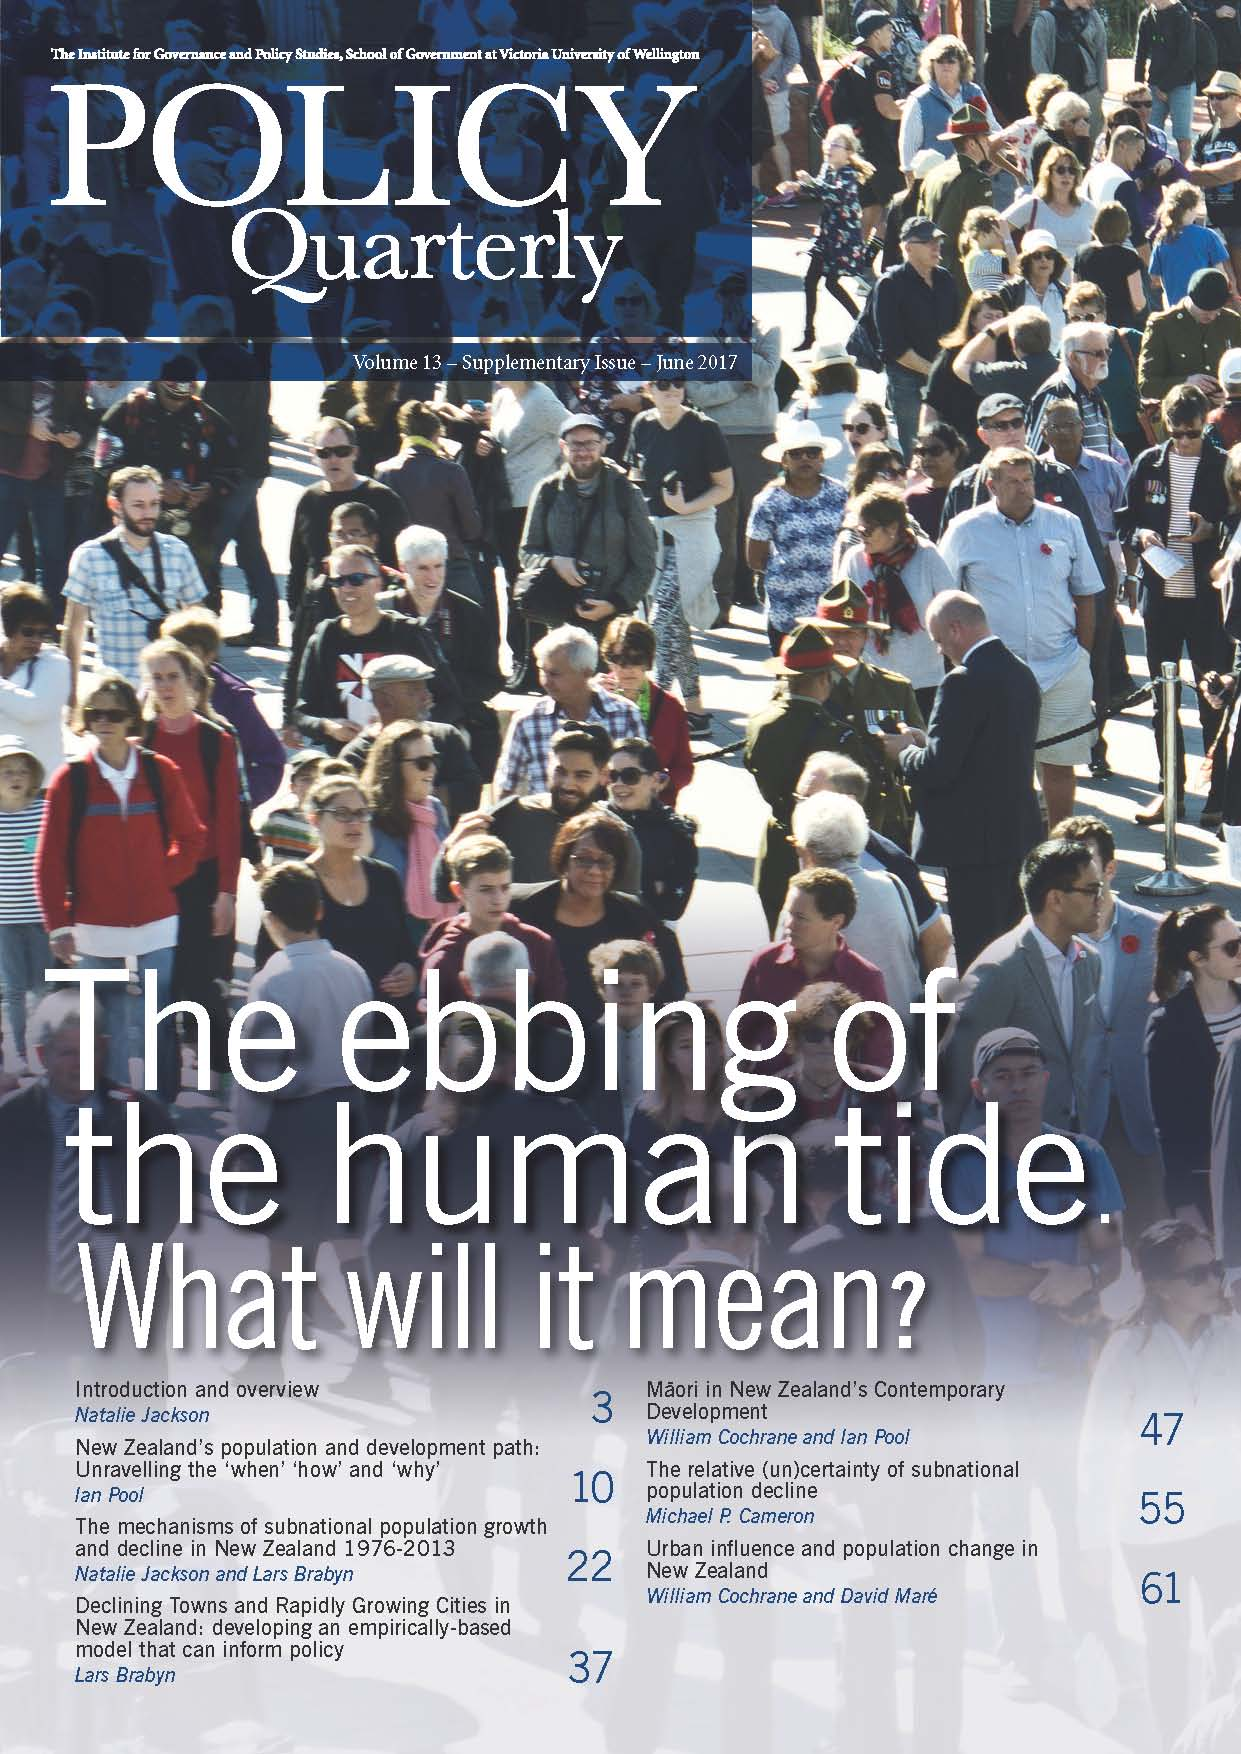 Policy Quarterly volume 13 supplementary issue 2017